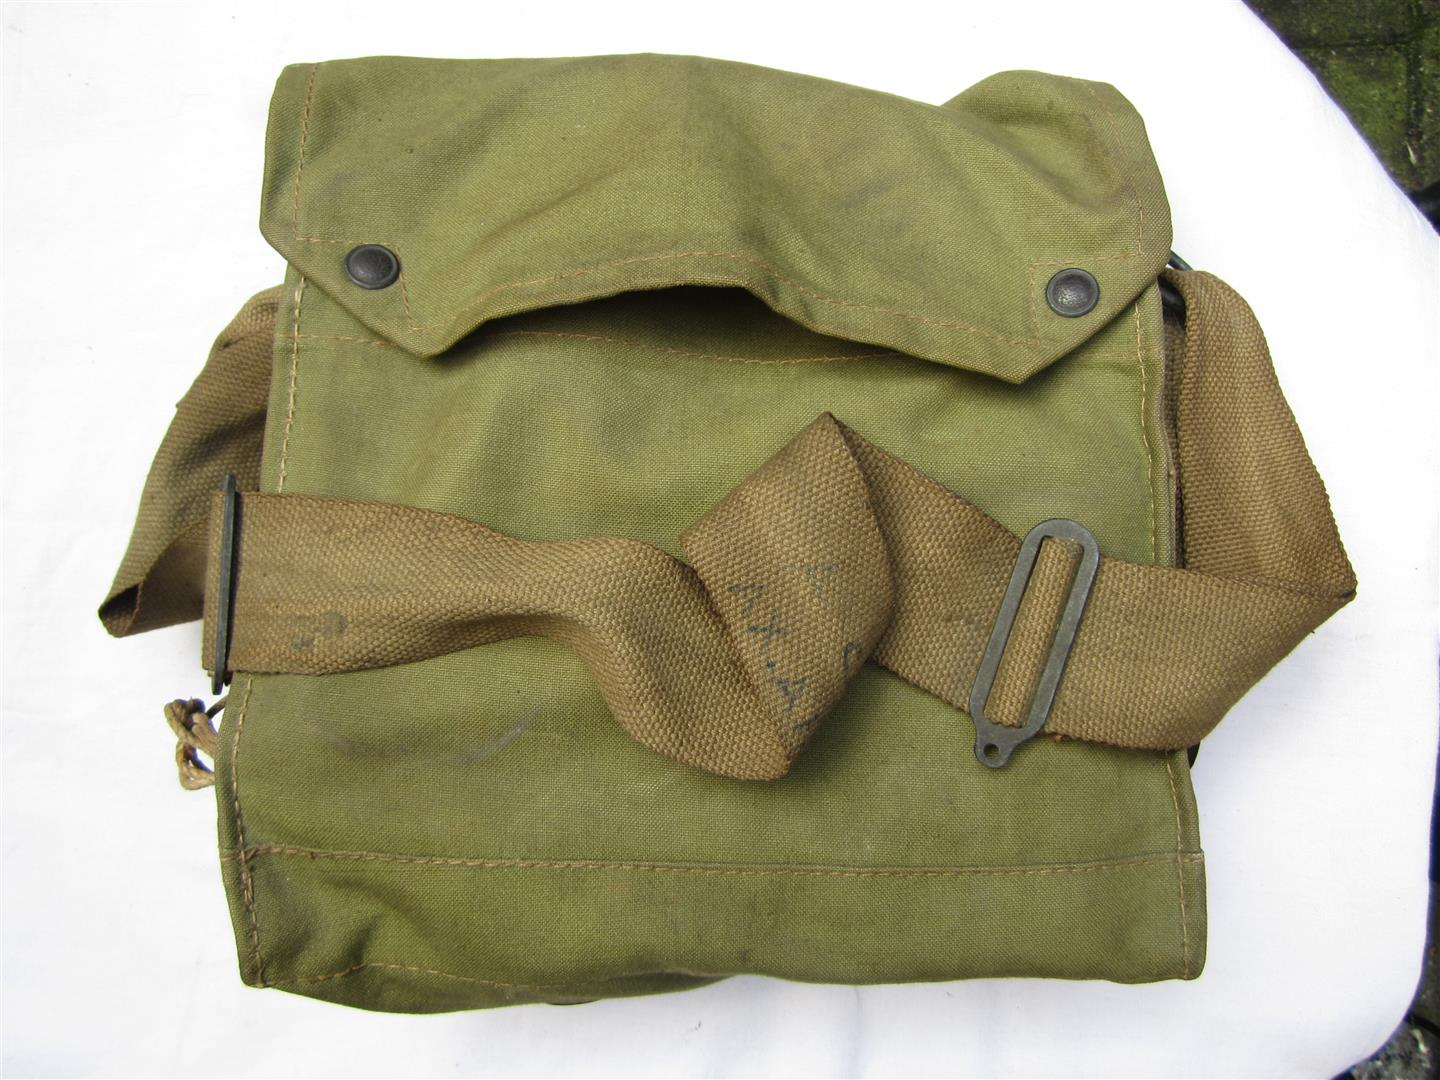 WW2 British Gasmask & Bag